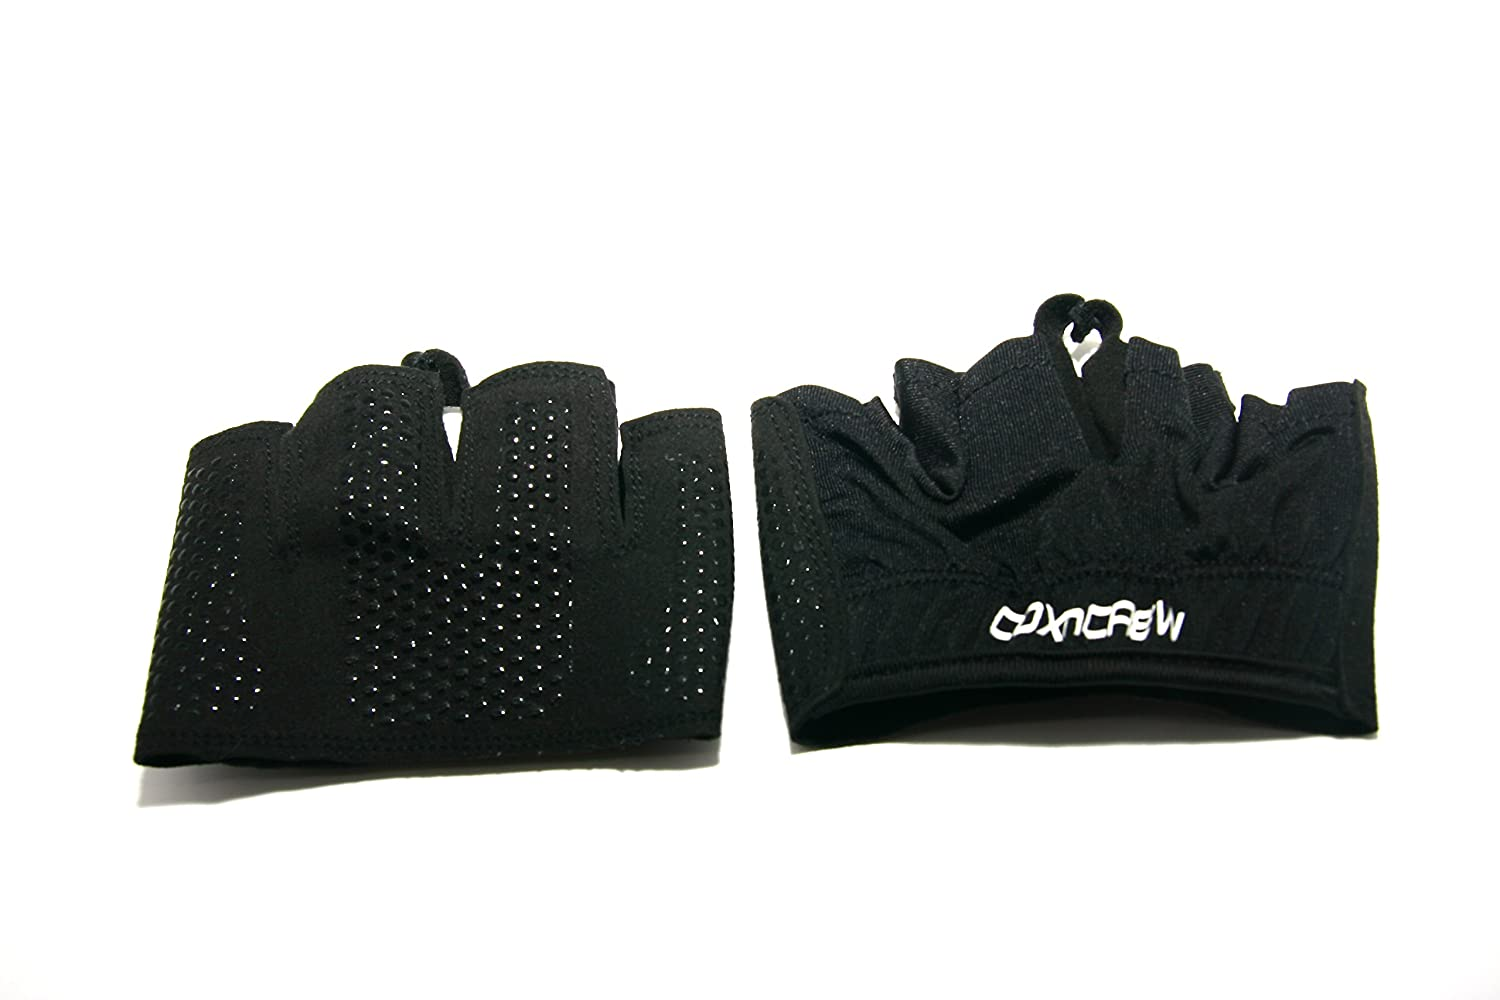 Amazon.com : COXnCREW Non Slip Indoor Rowing Fitness Workout Black Grip Glove For Protecting Hands : Sports & Outdoors